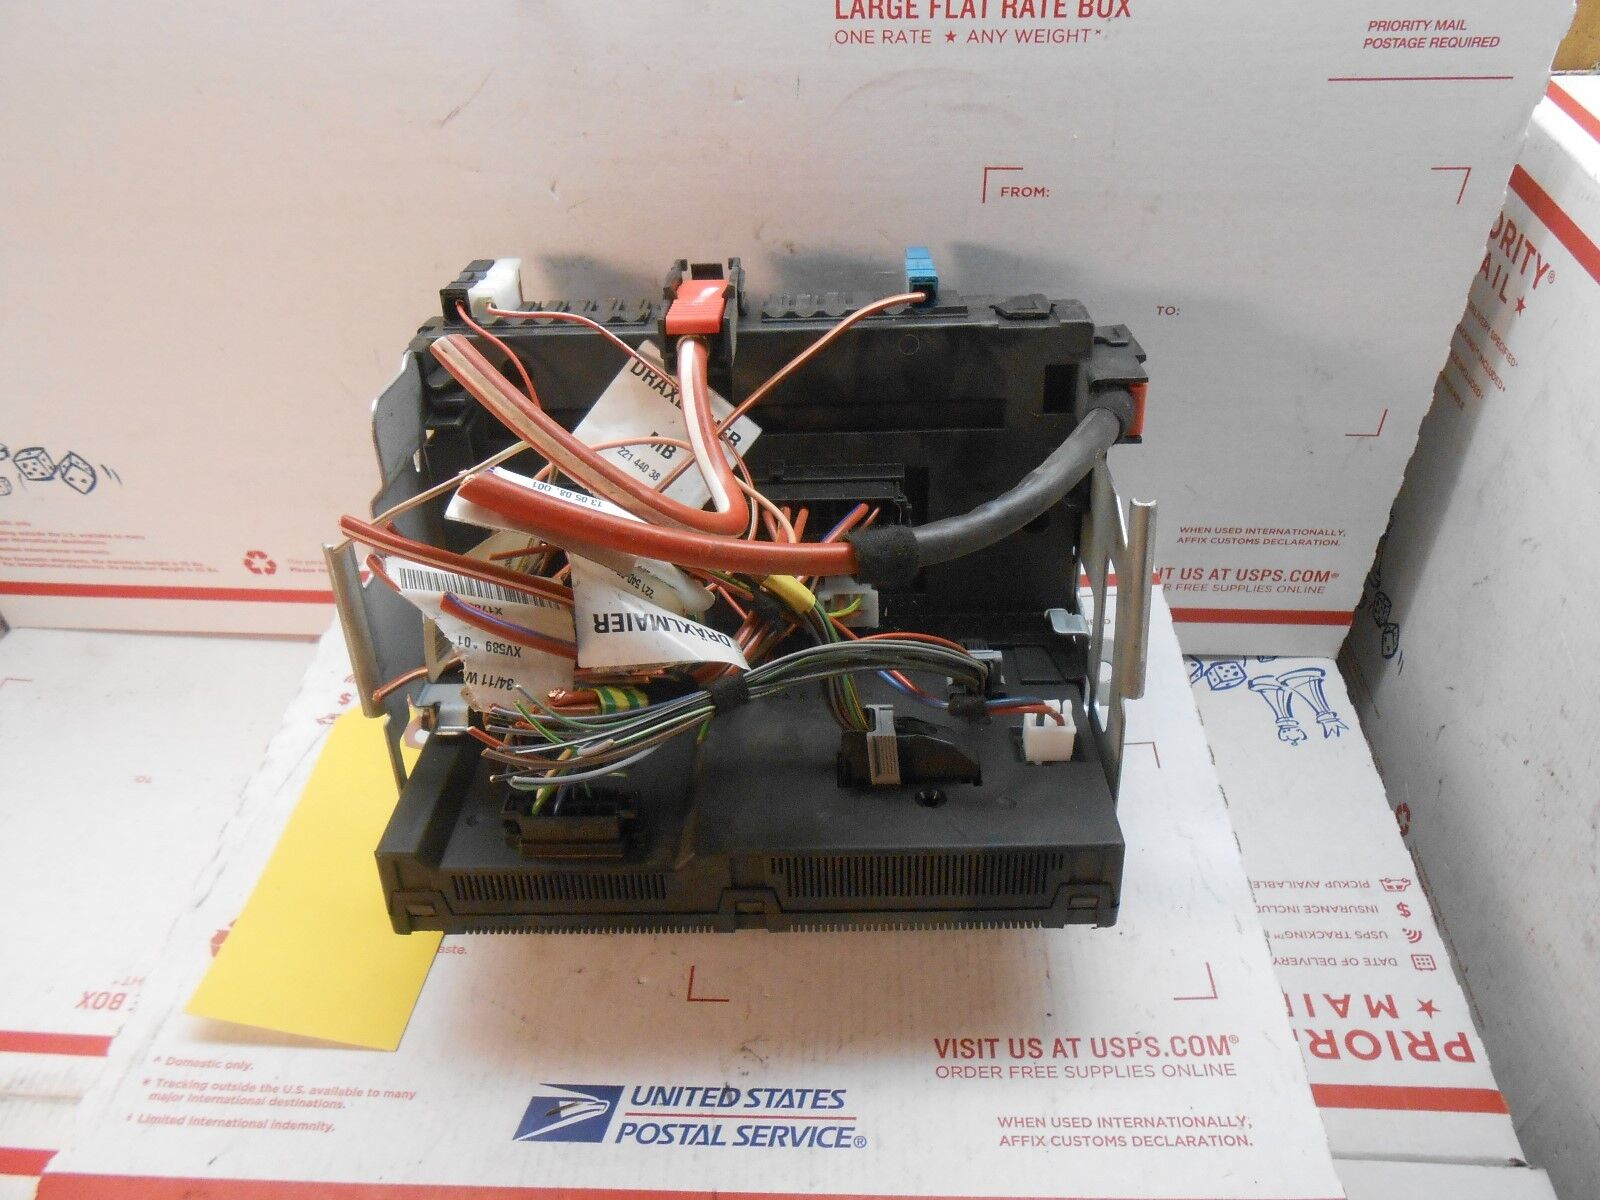 Used Mercedes Benz Controllers For Sale Page 10 C220 Fuse Box On 2010 2013 C Class Rear Sam A 2219006902 Pl0149